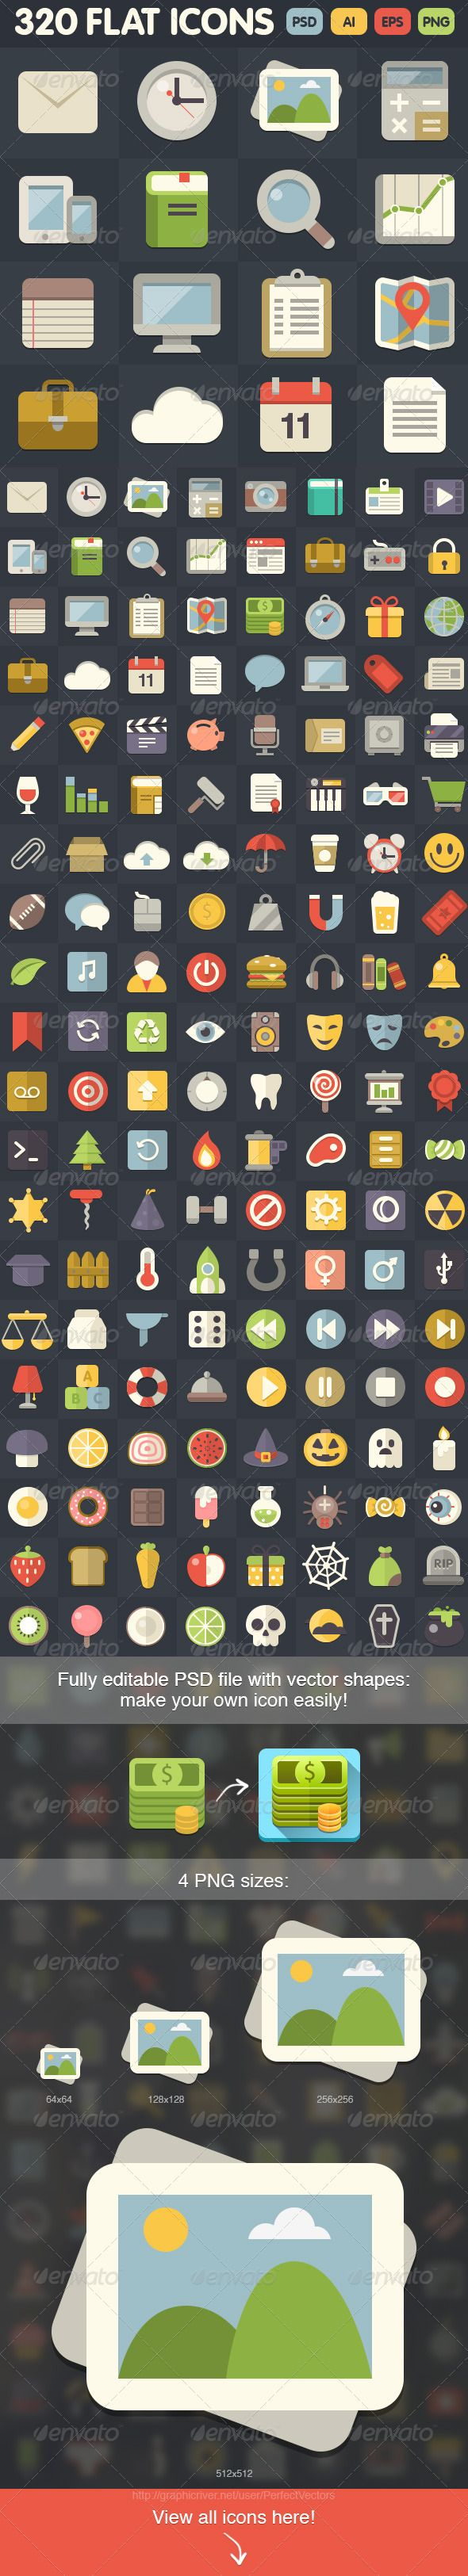 320 Flat Icons — Photoshop PSD #pixel perfect #print • Available here → https://graphicriver.net/item/320-flat-icons/6959638?ref=pxcr